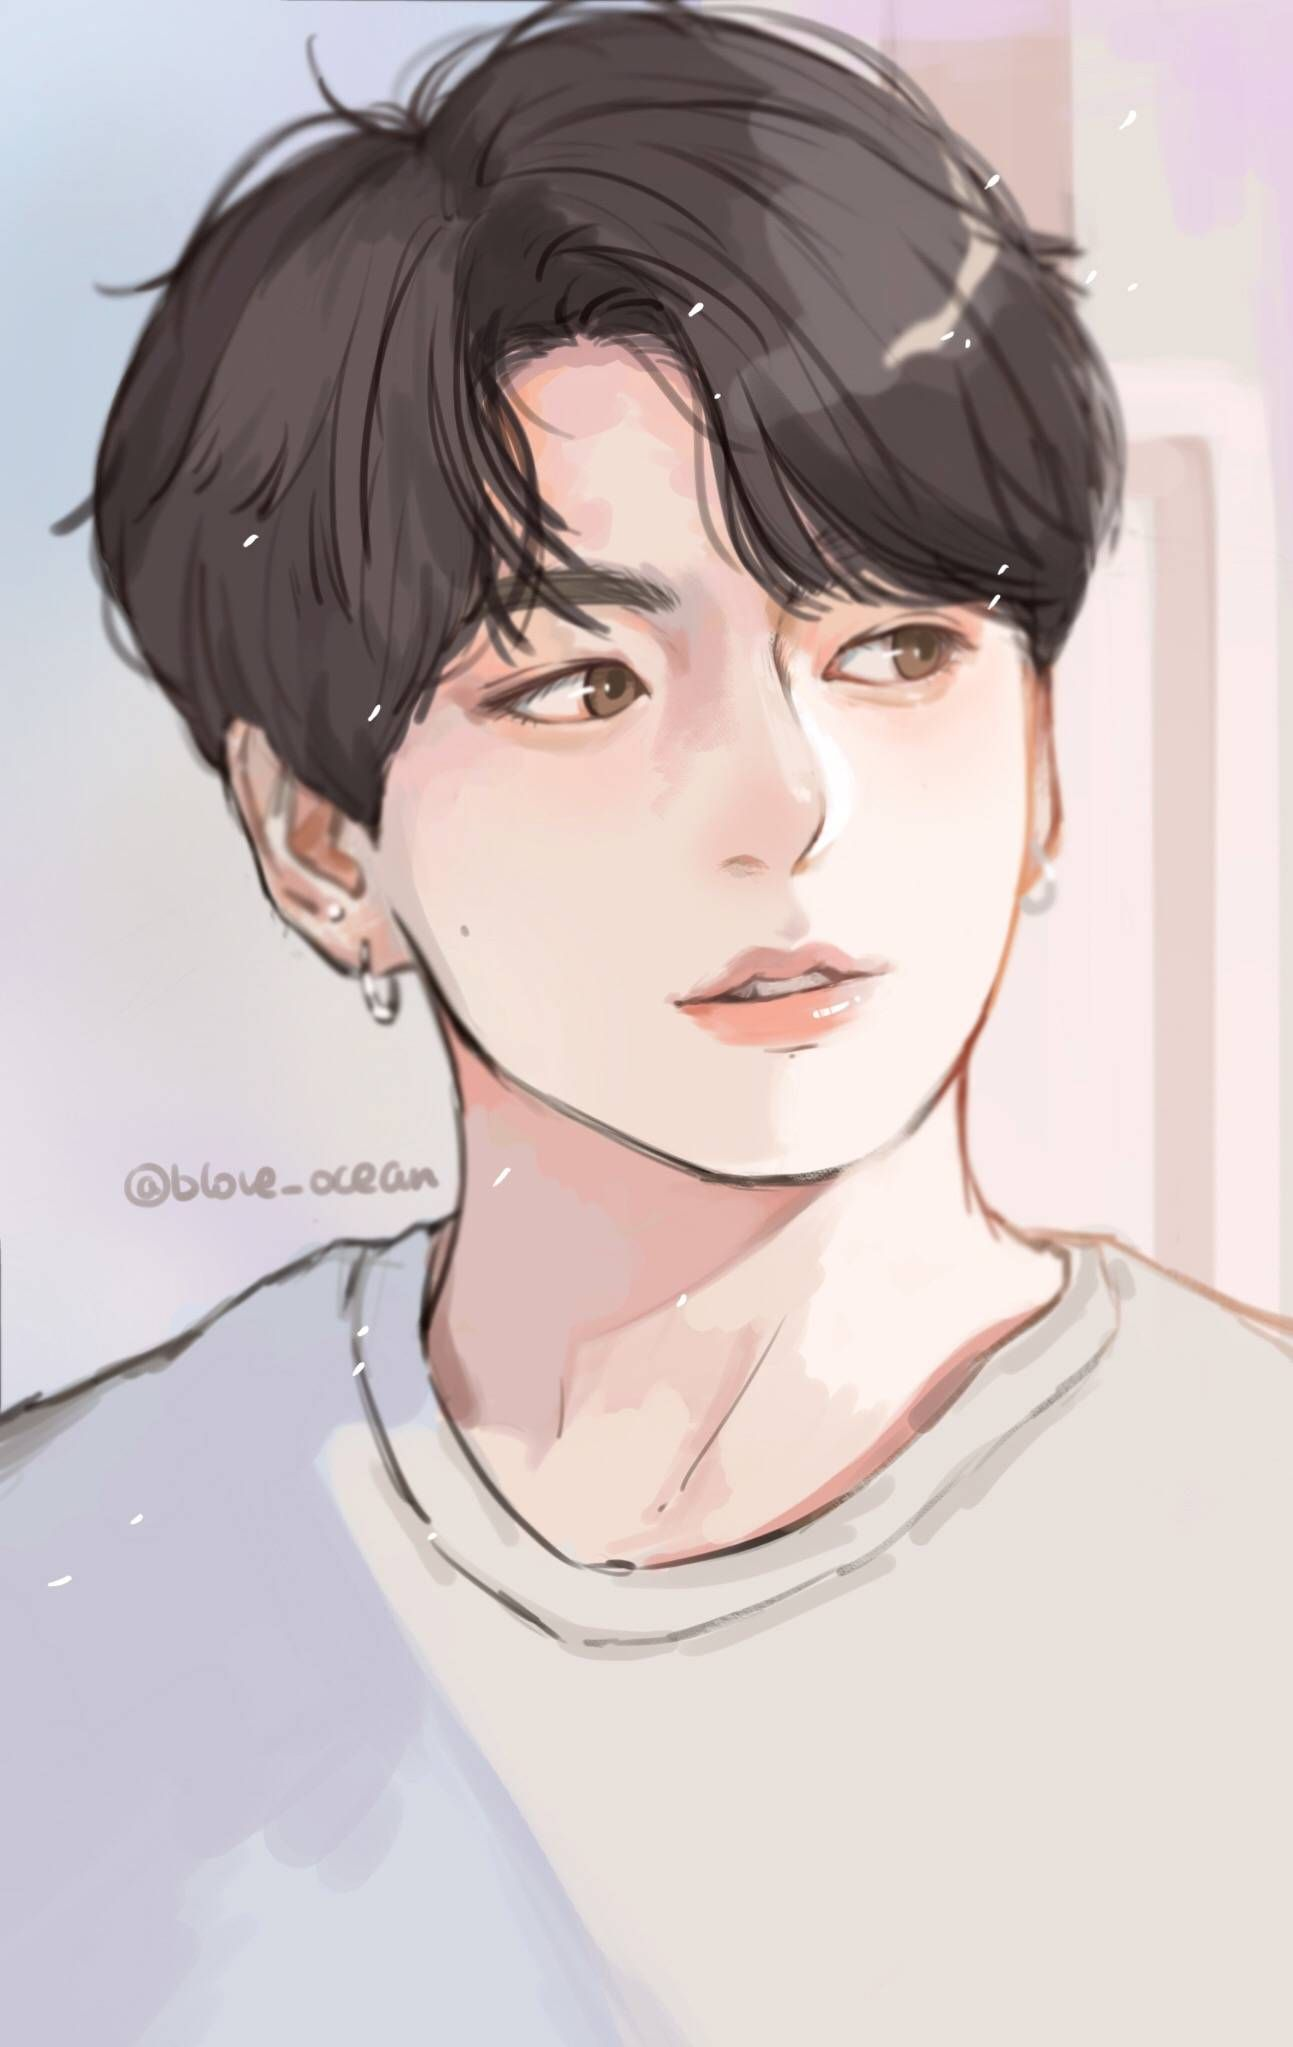 Pin by aryn_kook™ on BTS FANART Jungkook fanart, Bts